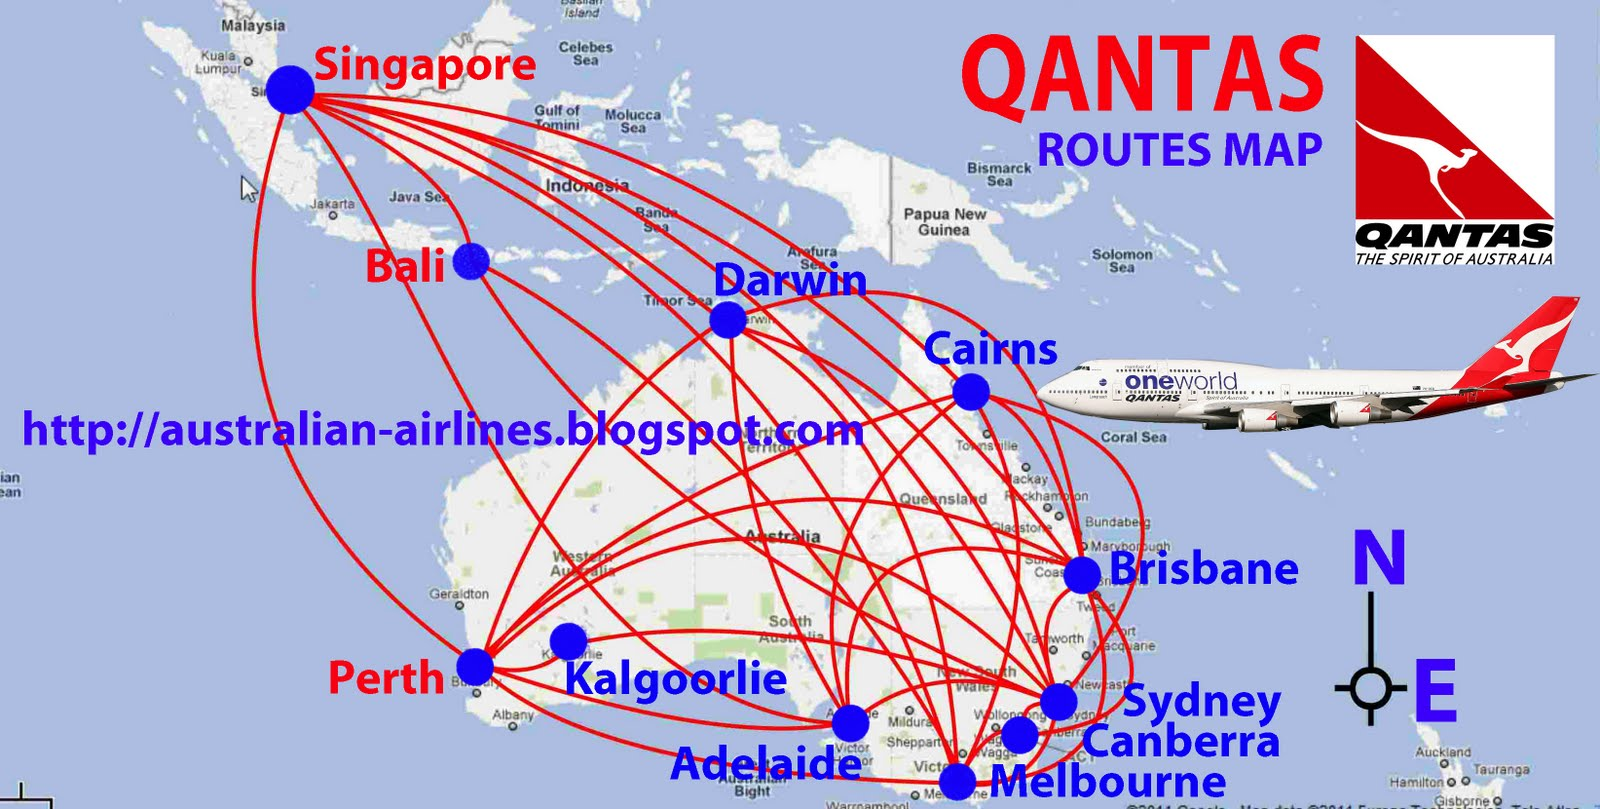 Qantas Flight From Singapore To Australia